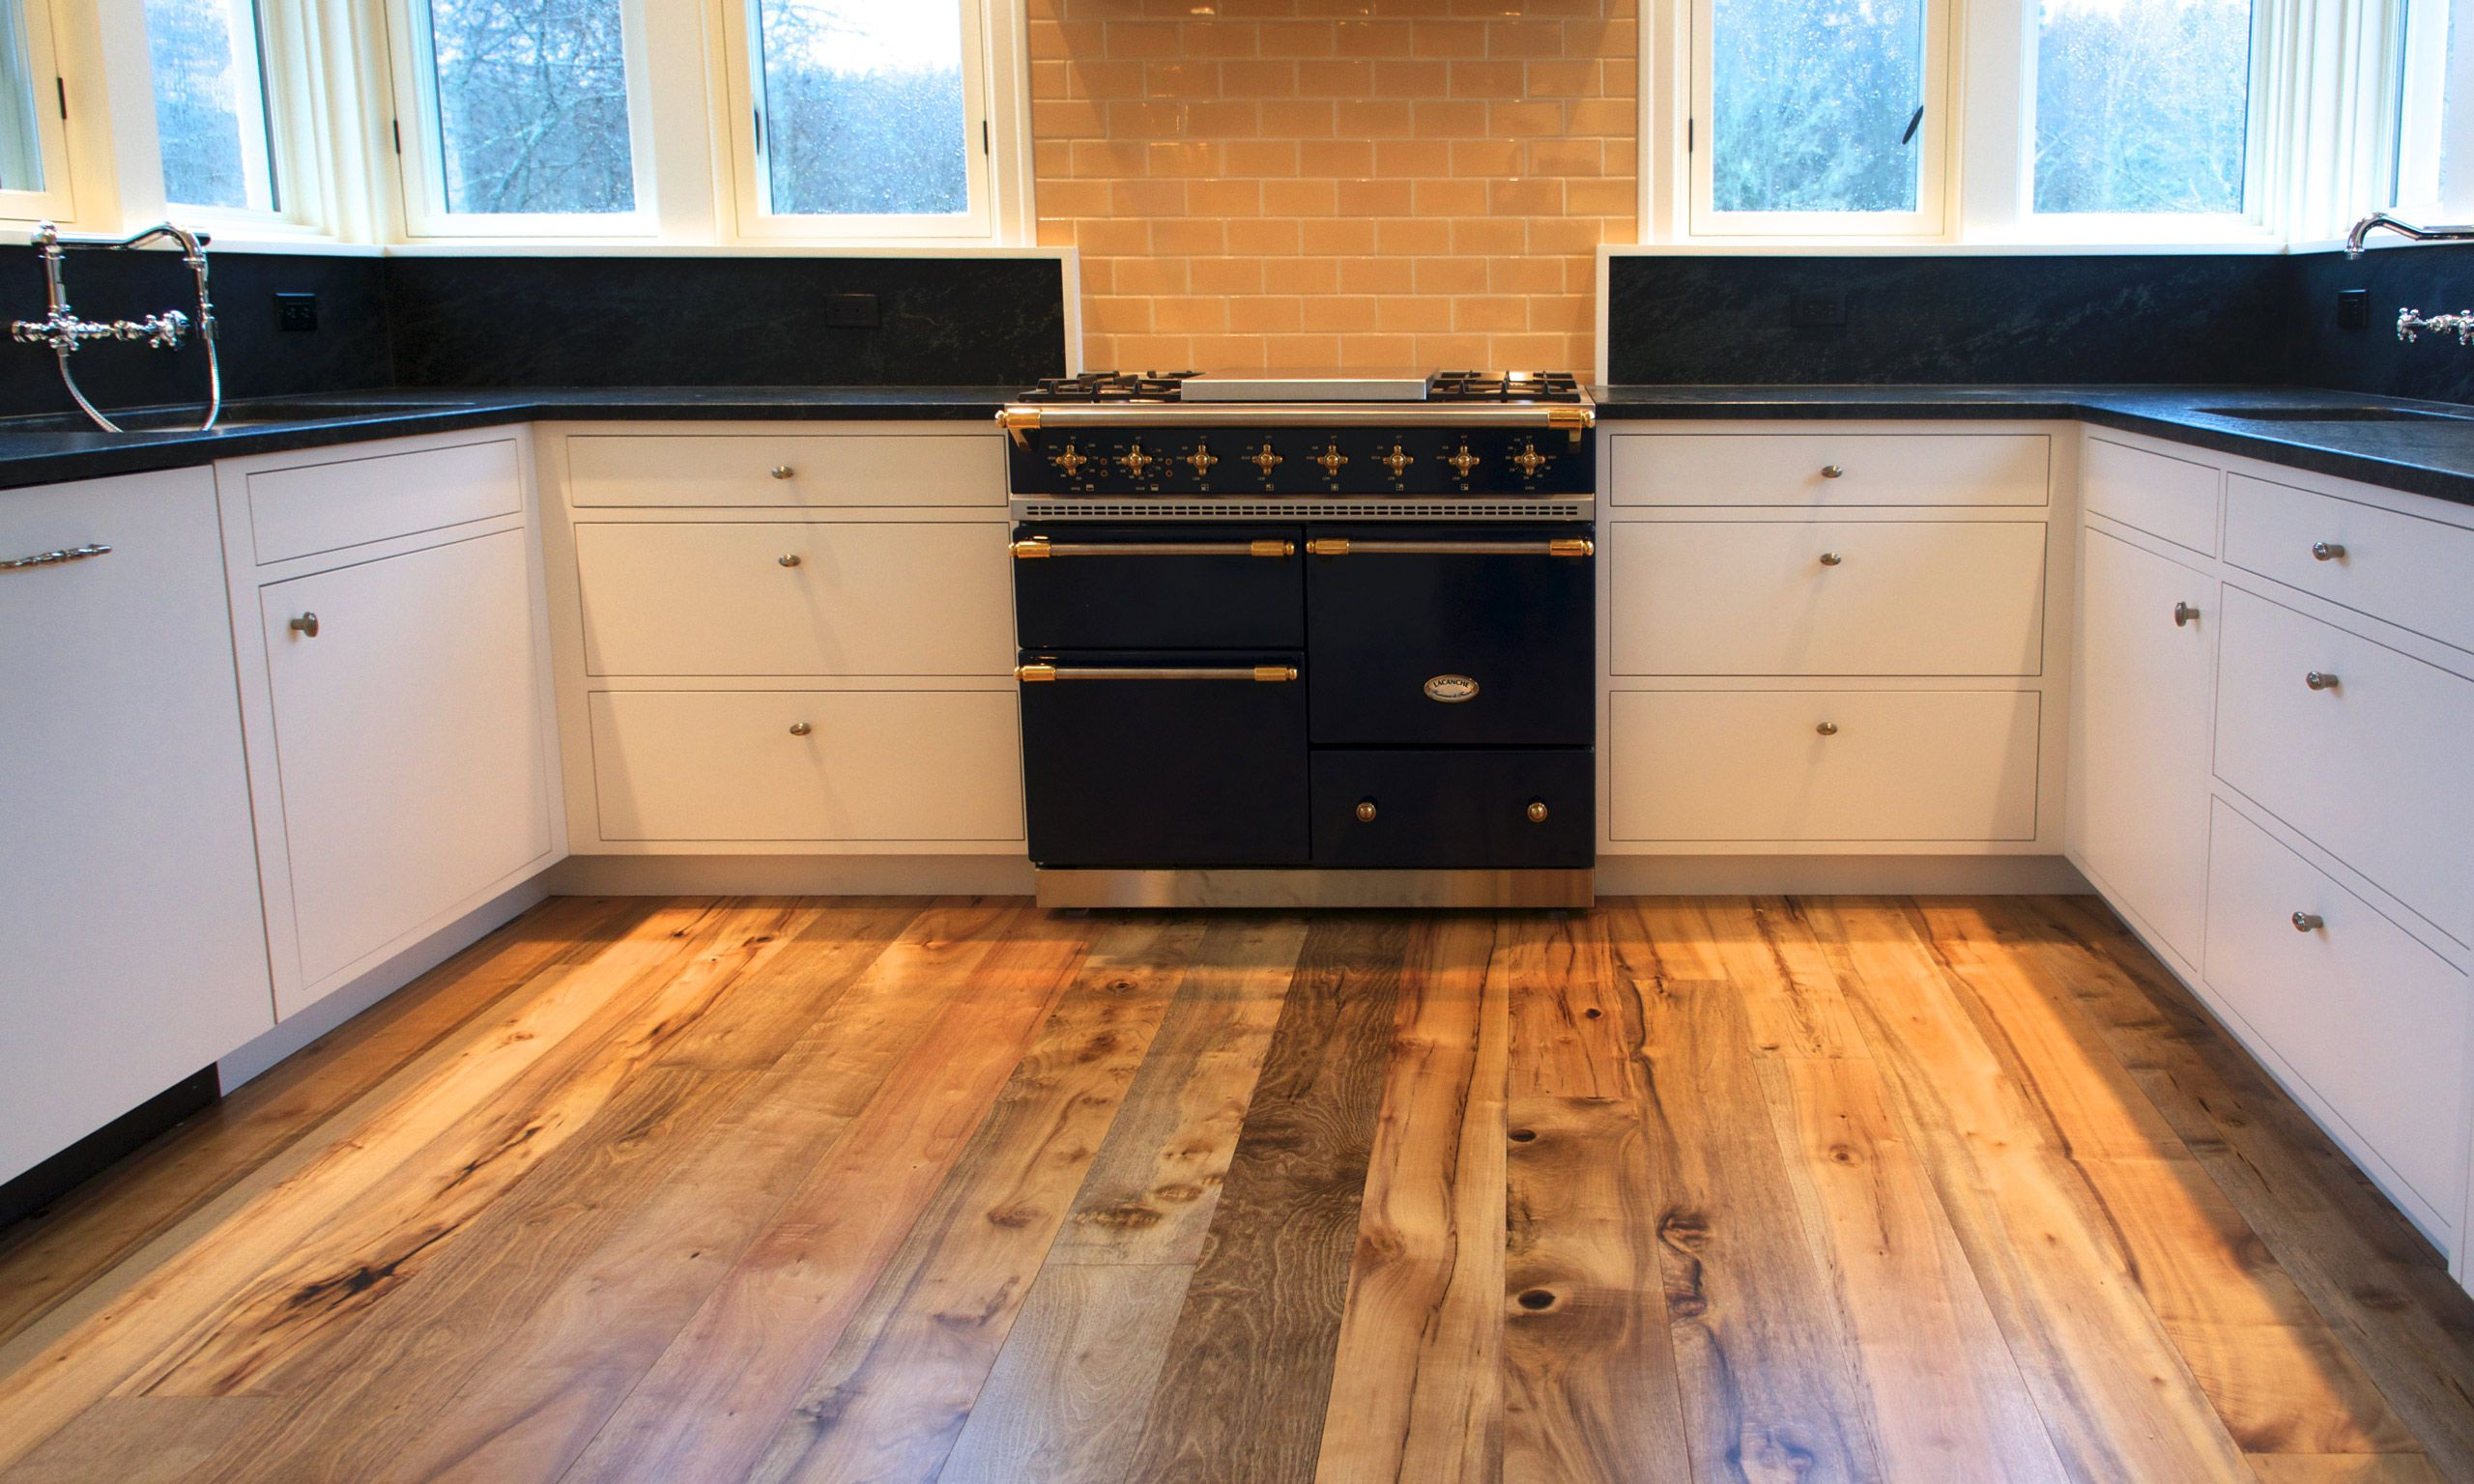 California Bay Laurel flooring